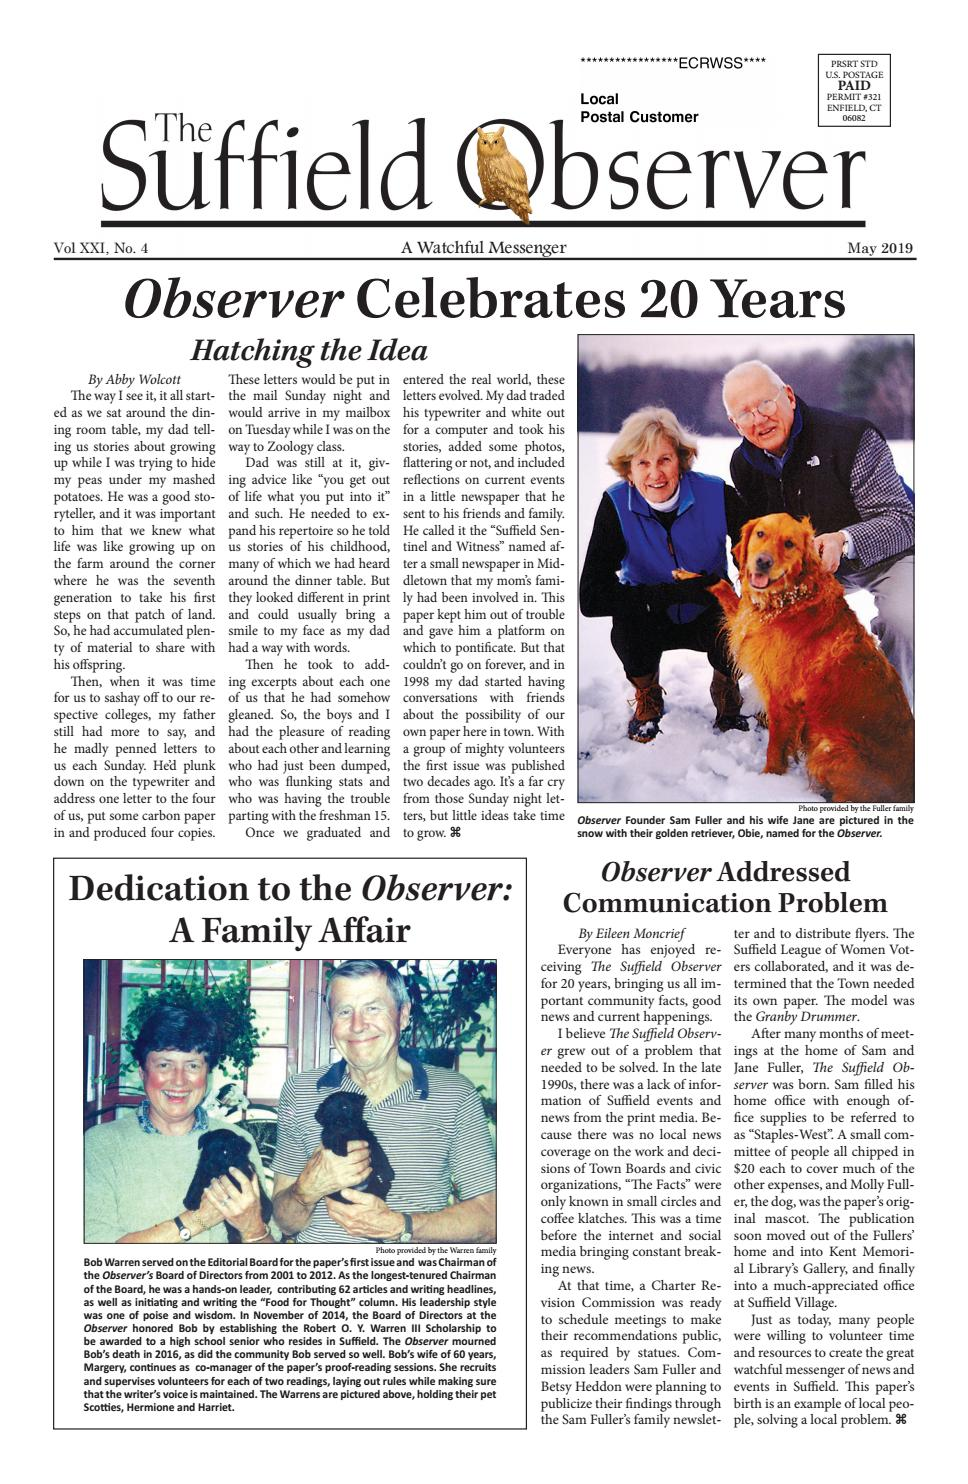 The Suffield Observer | May 2019 by The Suffield Observer